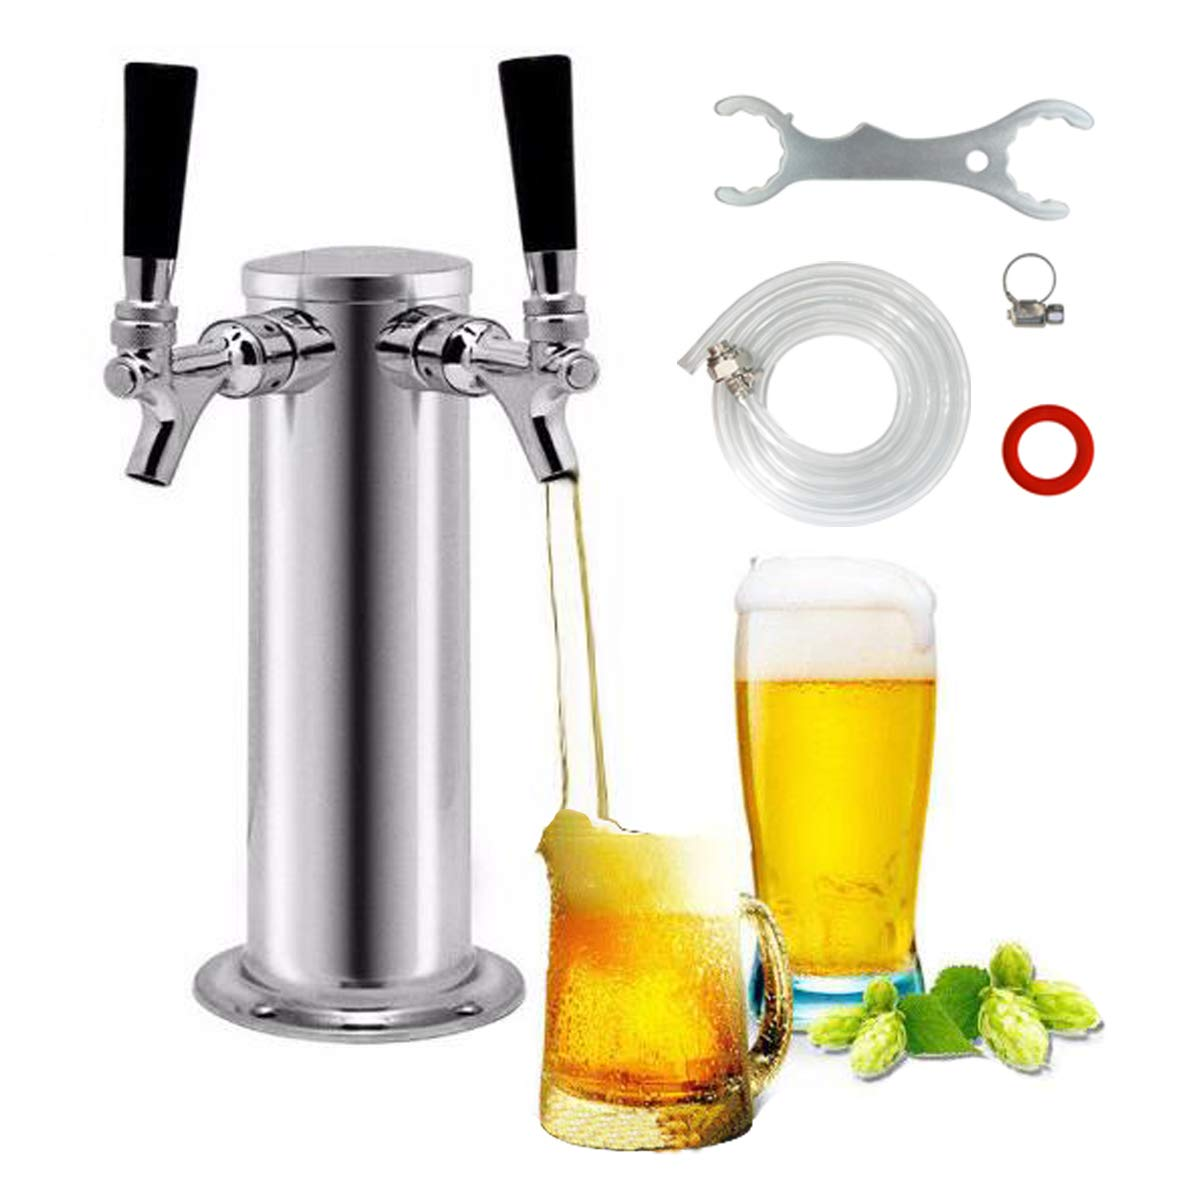 CO SHANGHAI Beer Faucet Beer Line Clamp PERA Brand Including Draft Beer Faucet ID 3//16 OD 7//16 Beer Line 5ft Length with Beer Line Connector Hex Nut and Clamp LTD Spanner Wrench 100/% Quality Guarantee TOMMUR INDUSTRY